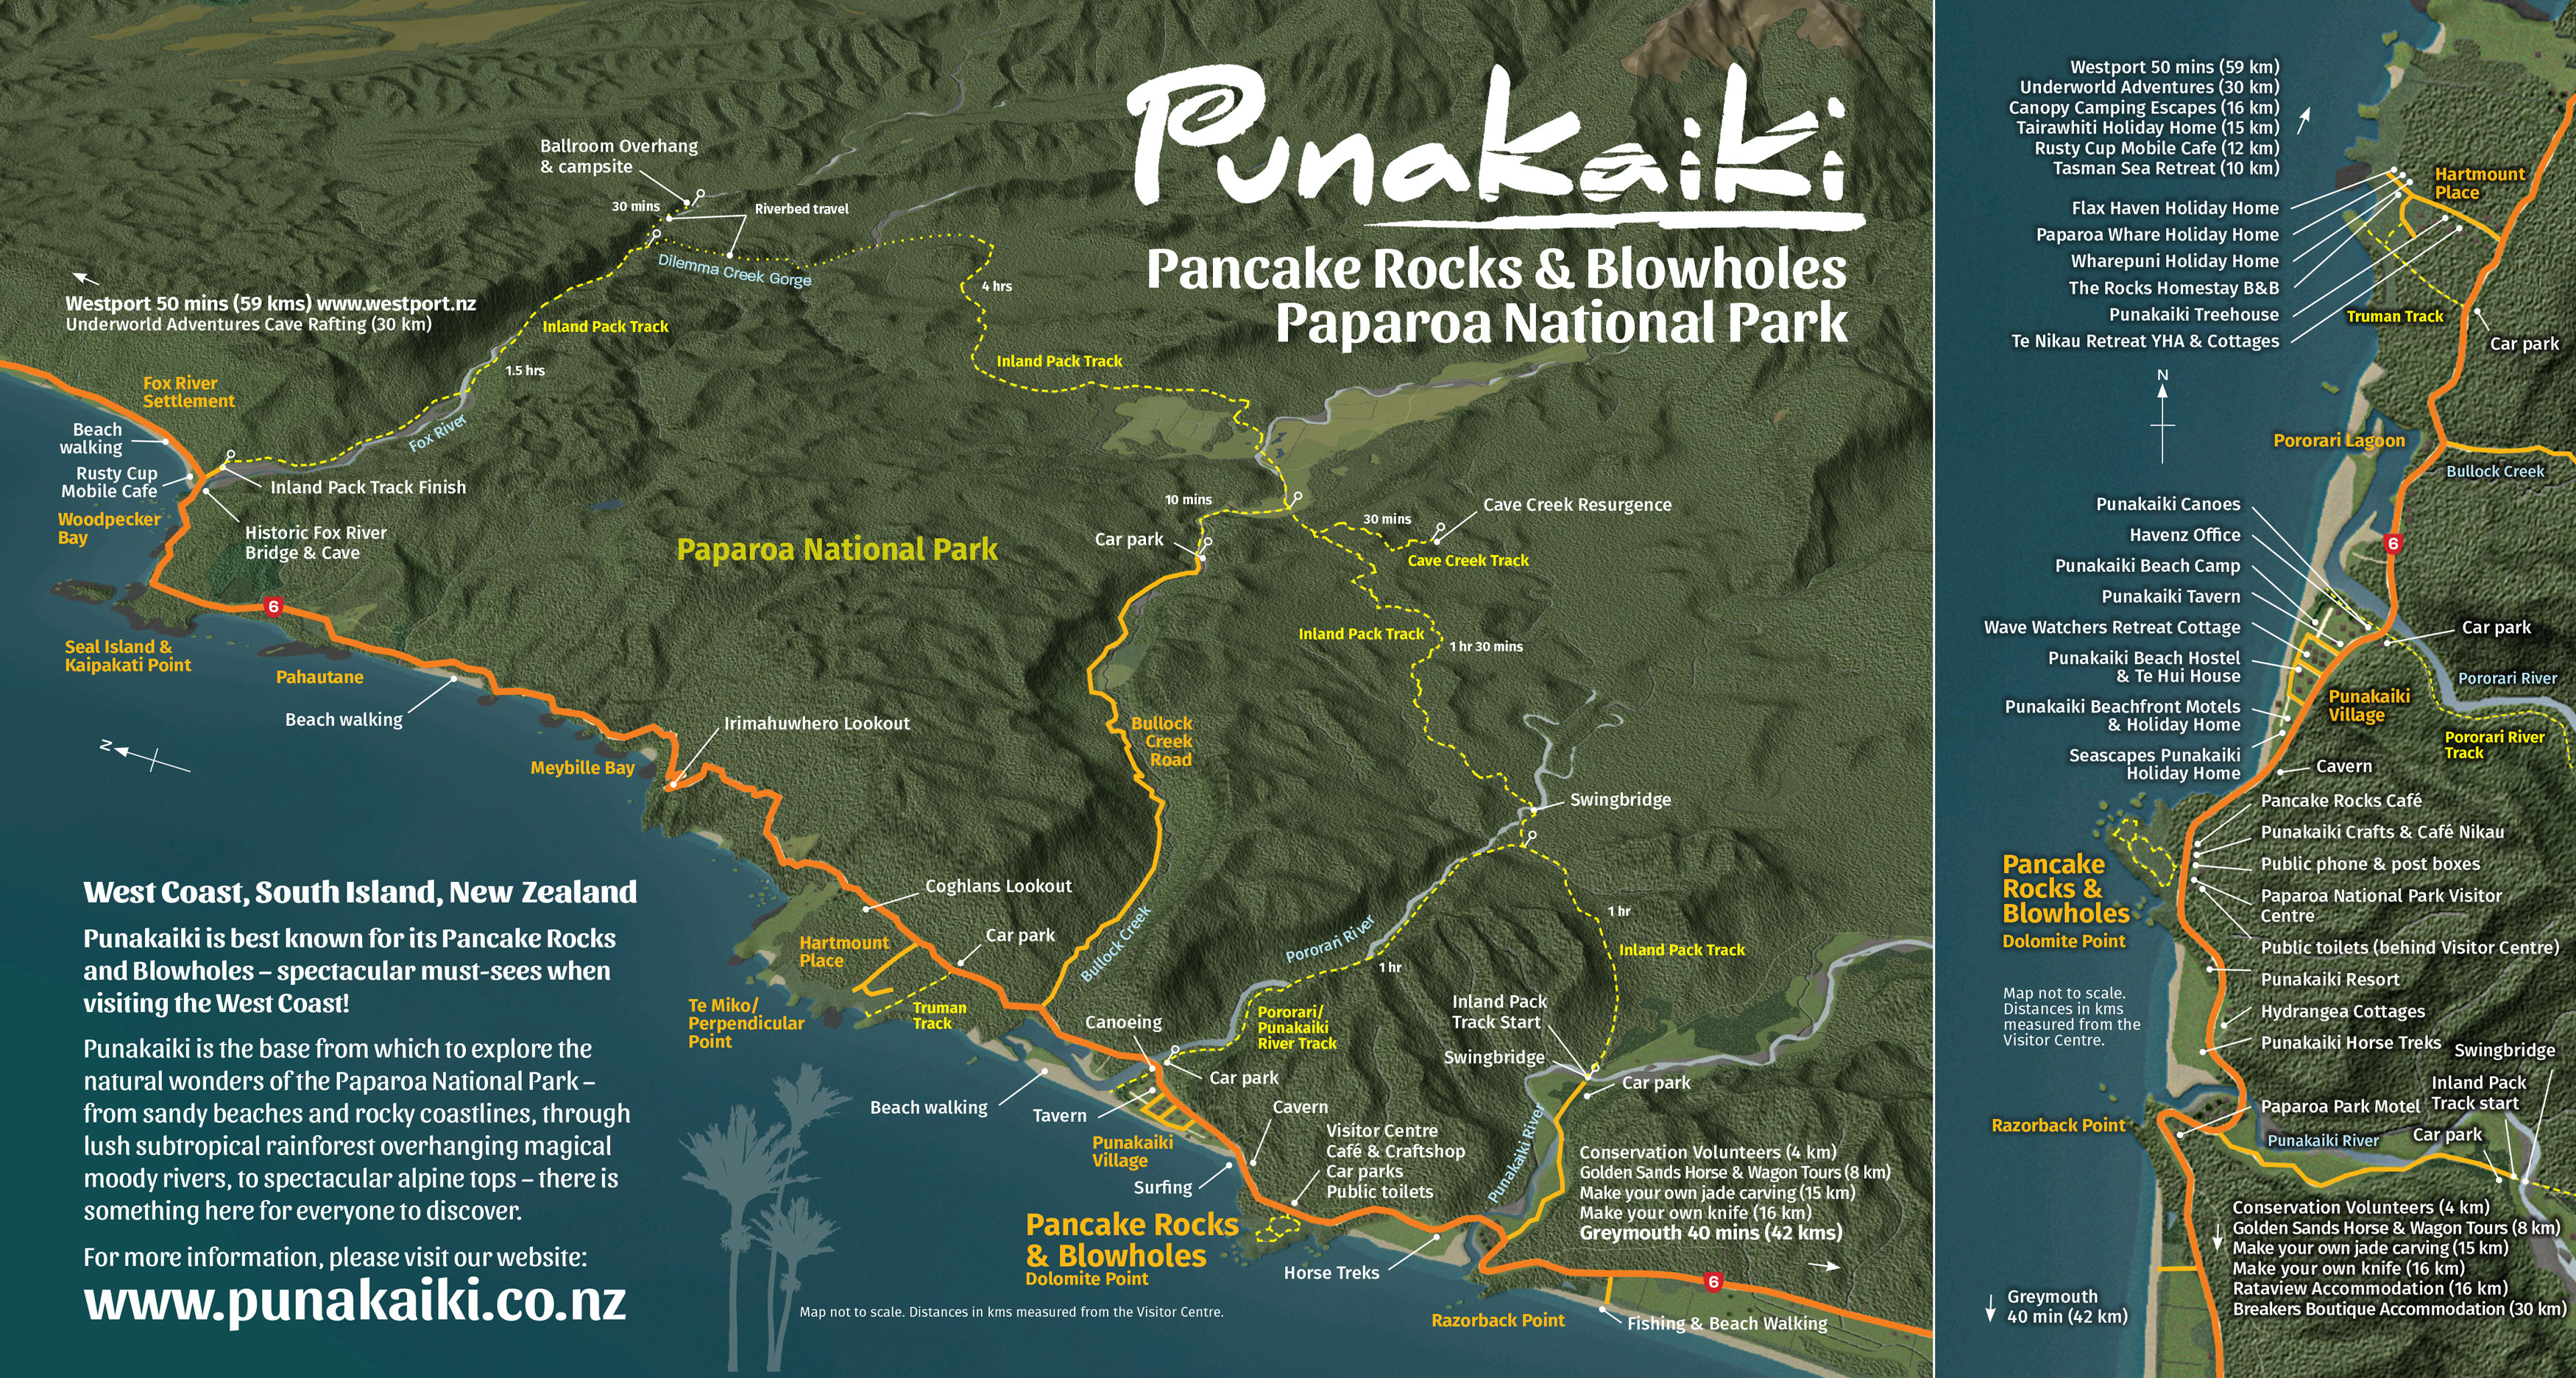 Maps of Punakaiki | Official Punakaiki Tourism Website Map Of High Beach on map of tv show, map of historical sites, map of main highway, map of stage, map of coast, map of border, map of dhahran hills, map of ferry, map of florida, map of seaport, map of thanksgiving, map of tiki, map of salt mine, map of surrounding, map of seabreeze, map of fat, map of minnewaukan, map of cape may county zoo, map of cartoon, map of scuba,